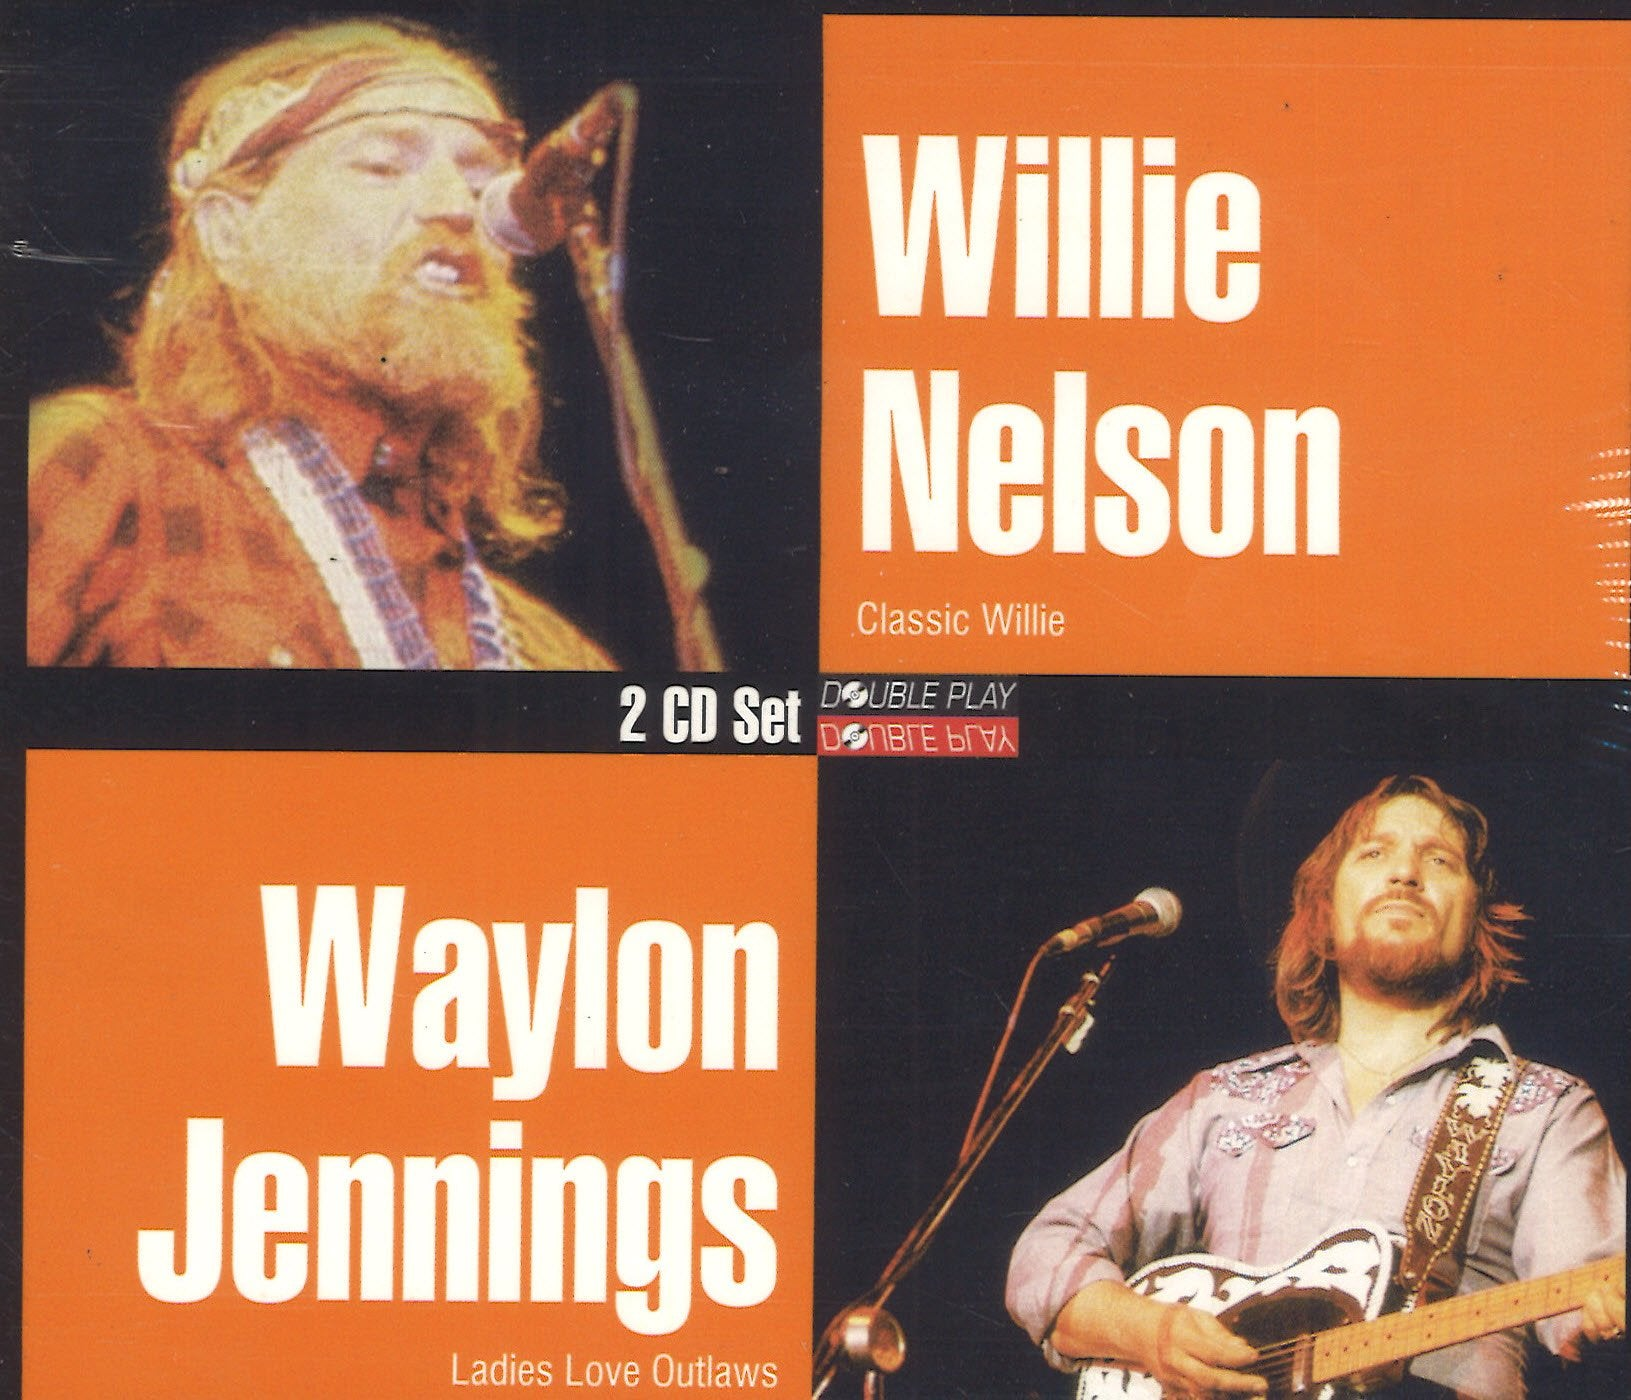 Waylon Jennings & Willie Nelson Classic Willie / Ladies Love Outlaws: 2 CD Set